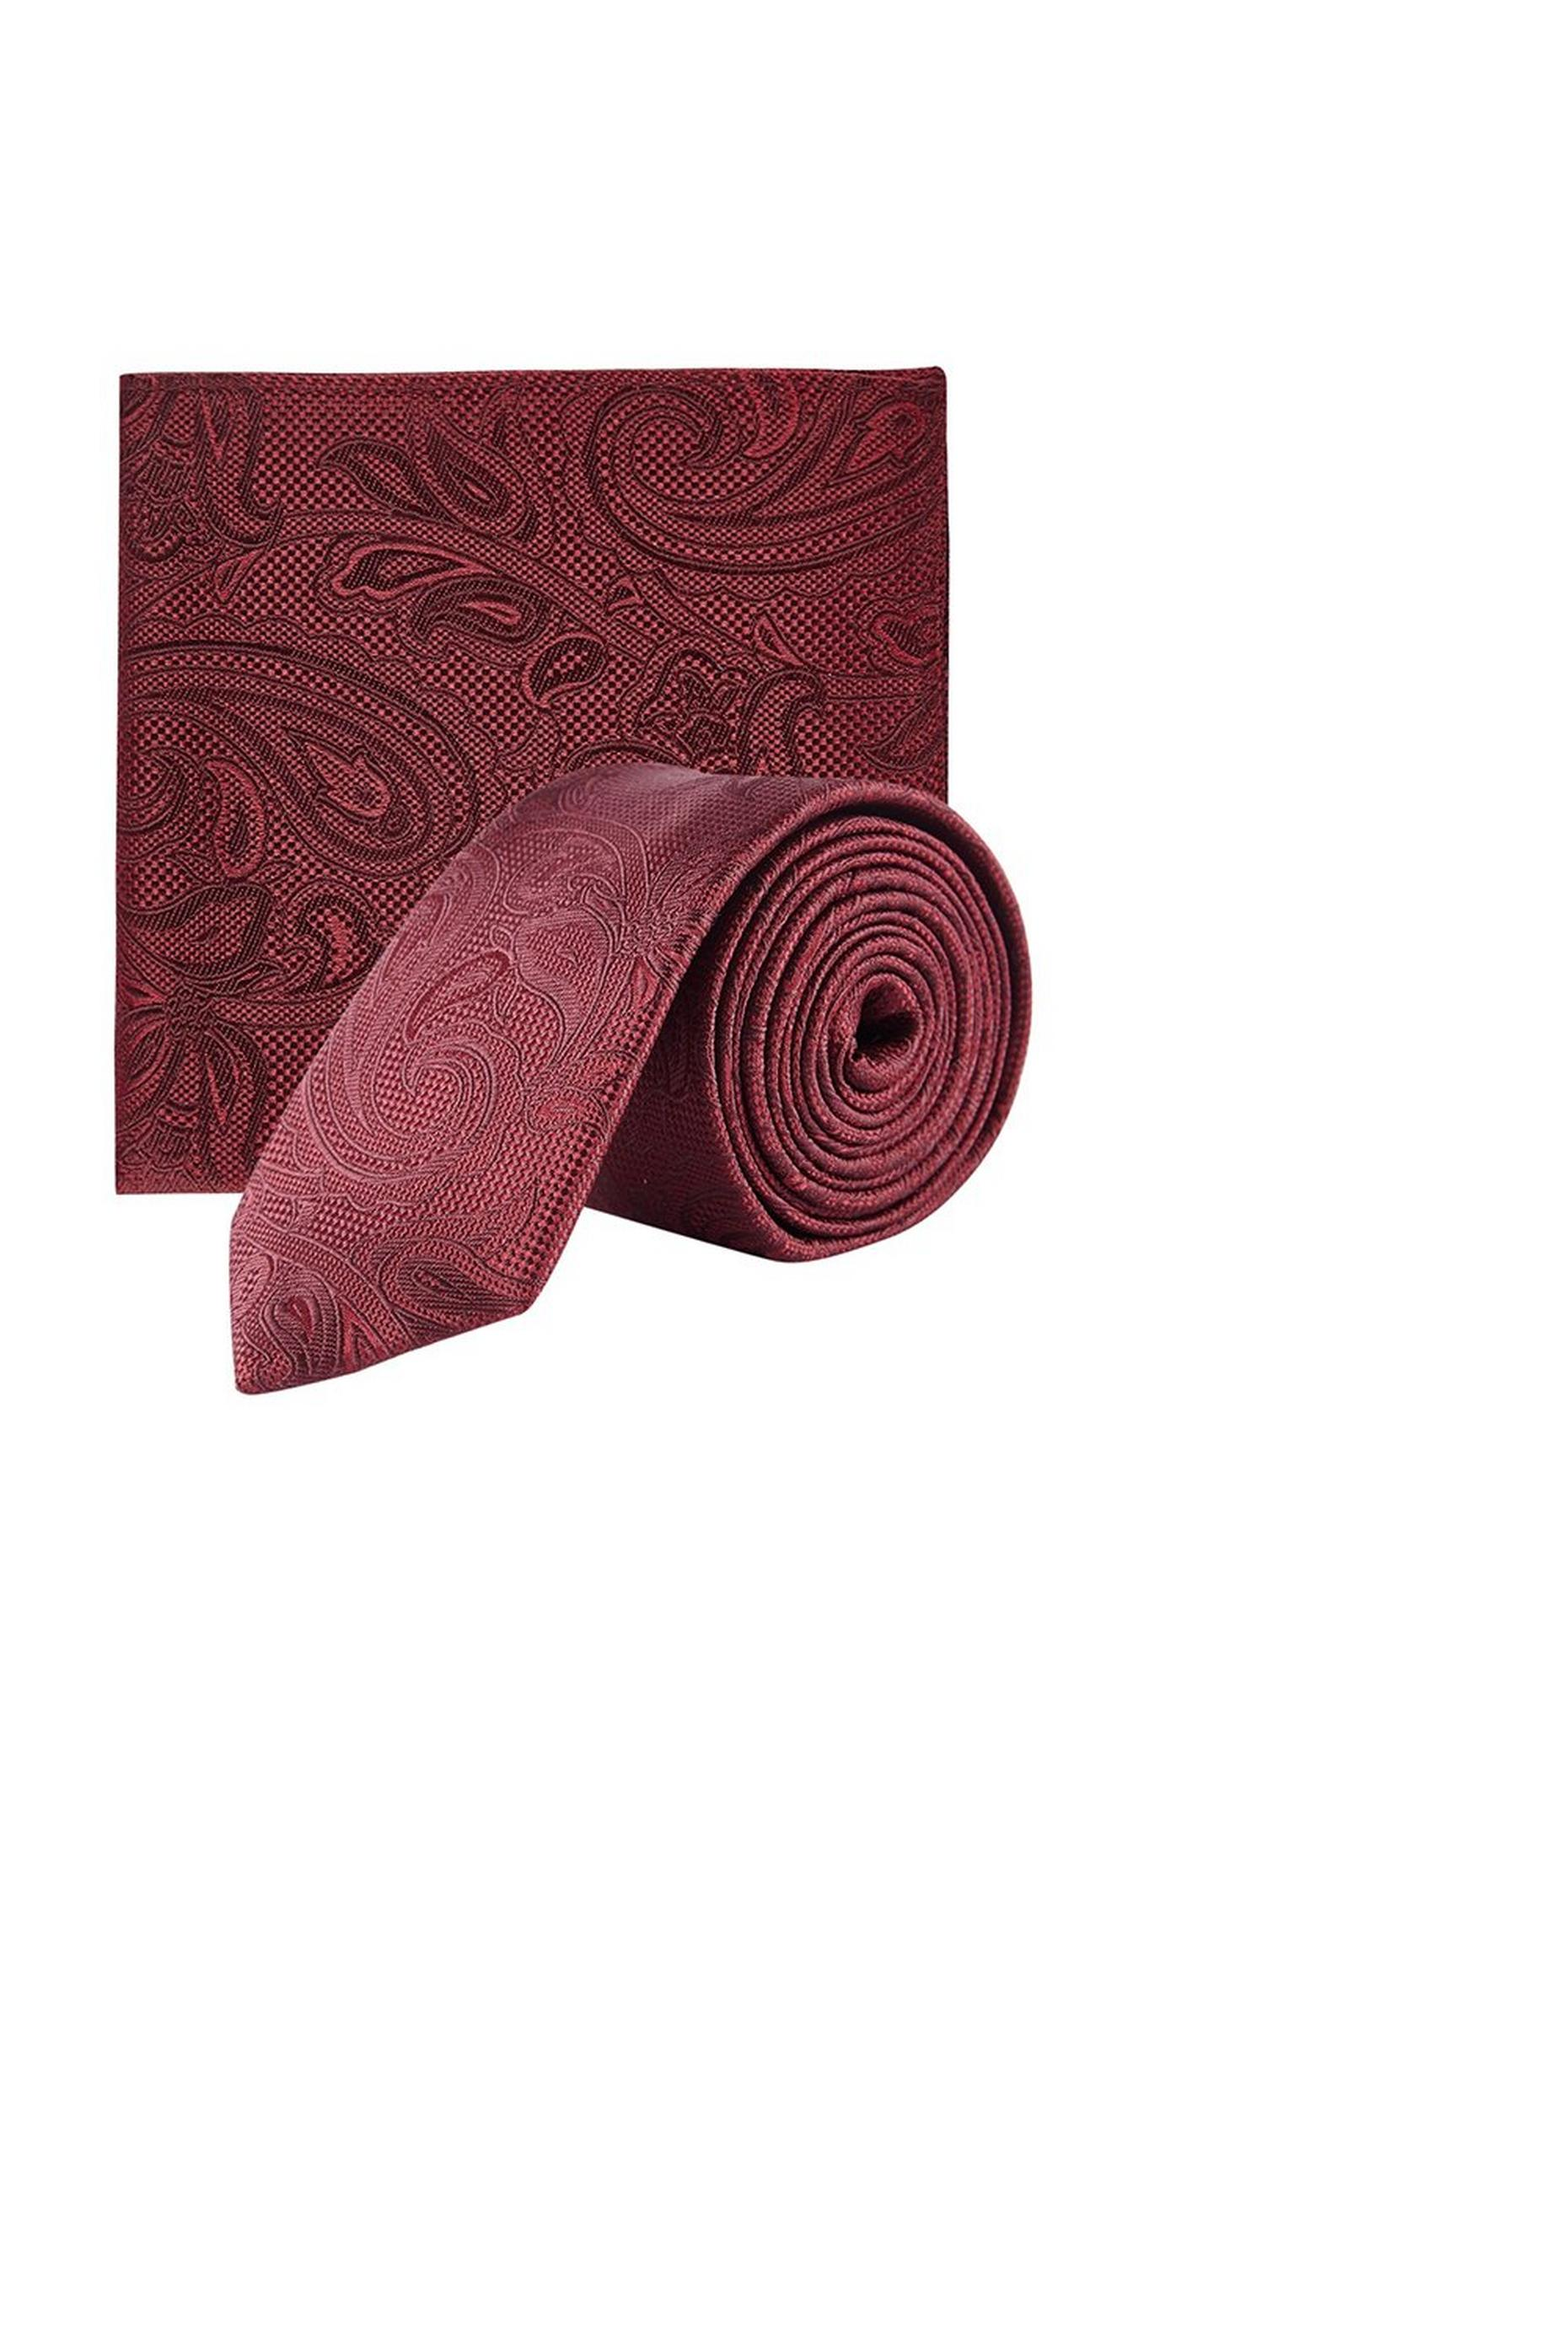 Burgundy Paisley Set